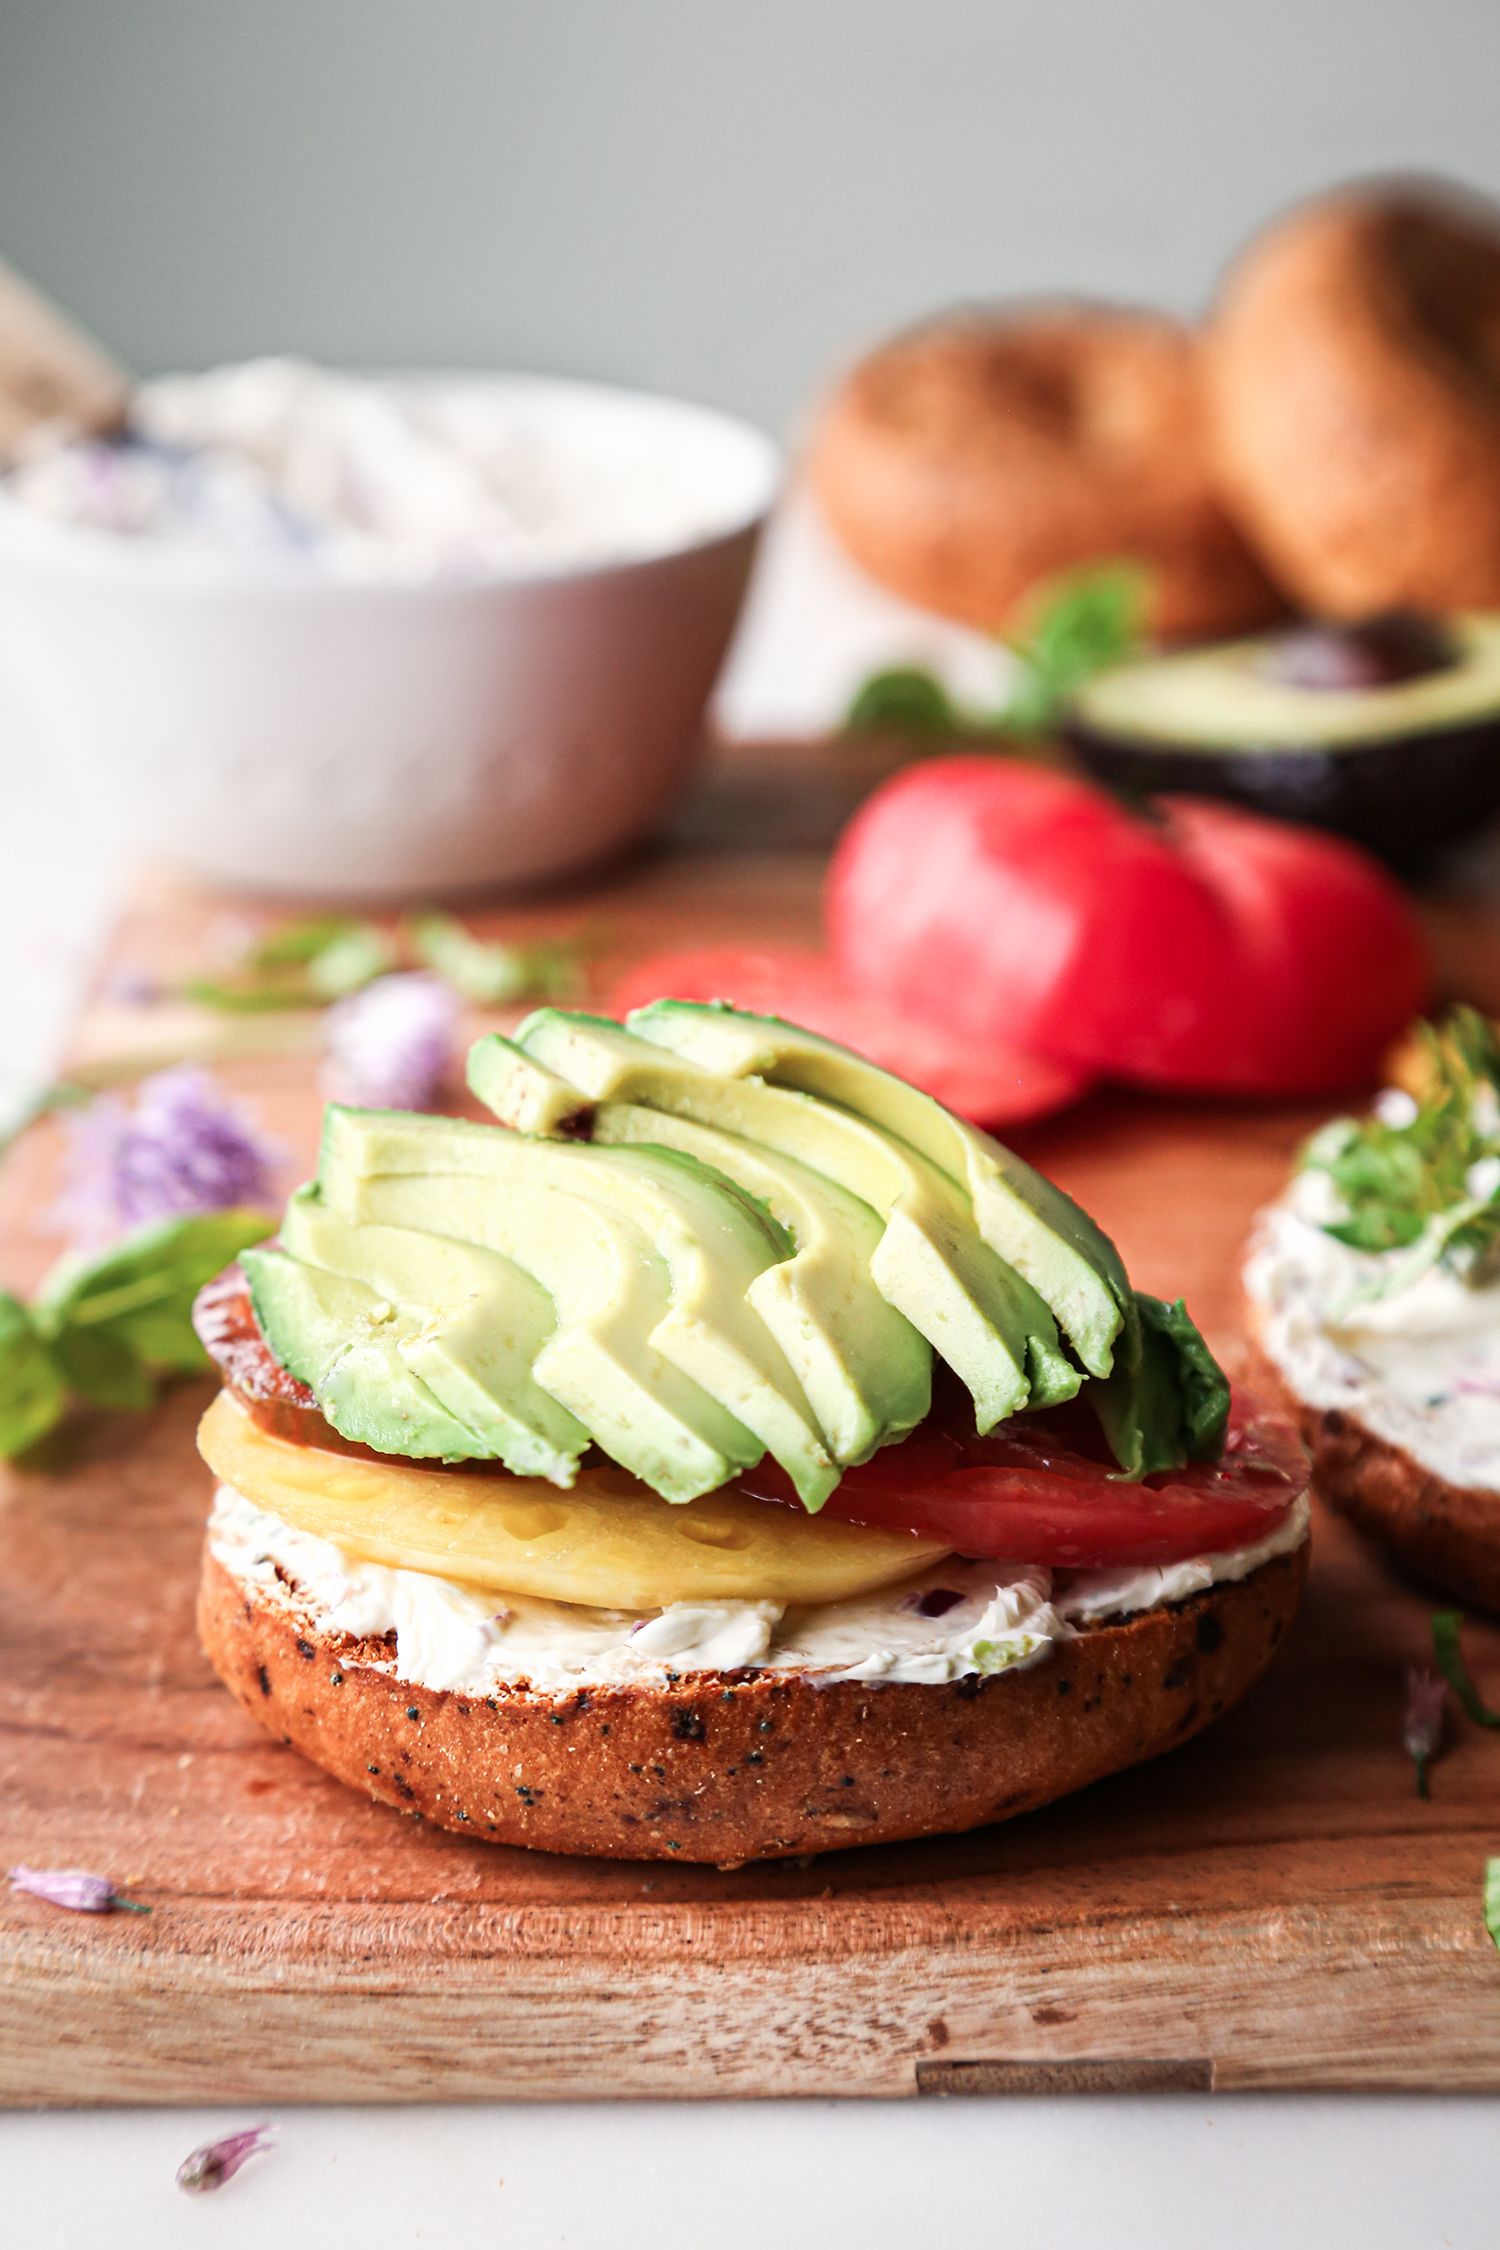 Avocado and Tomato slices layered on toasted bagel